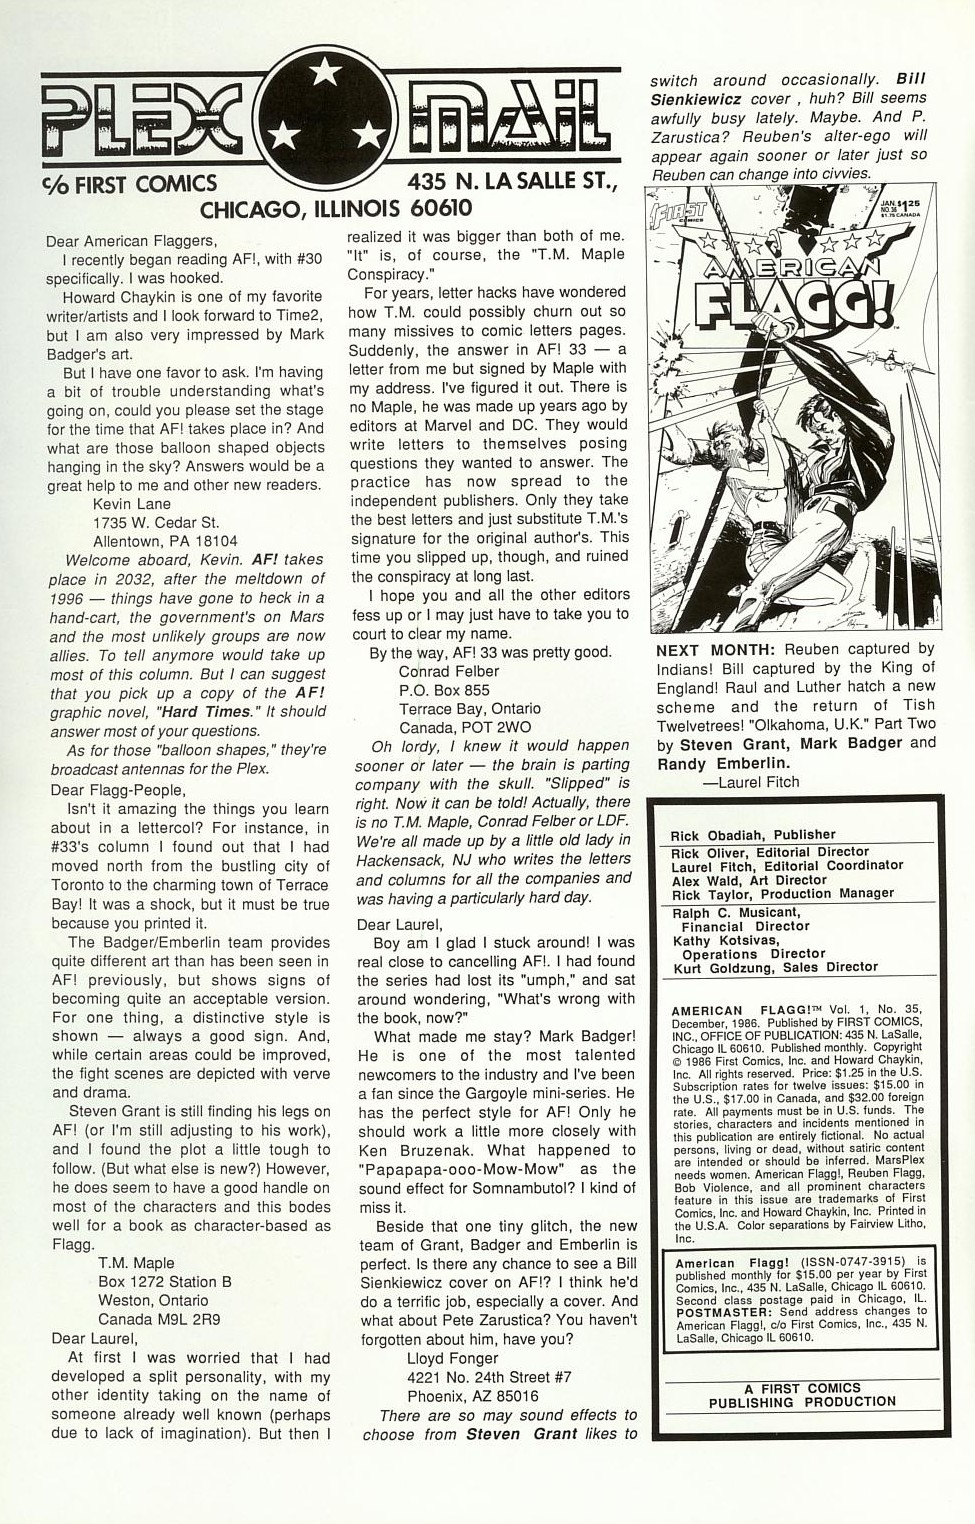 Read online American Flagg! comic -  Issue #35 - 2